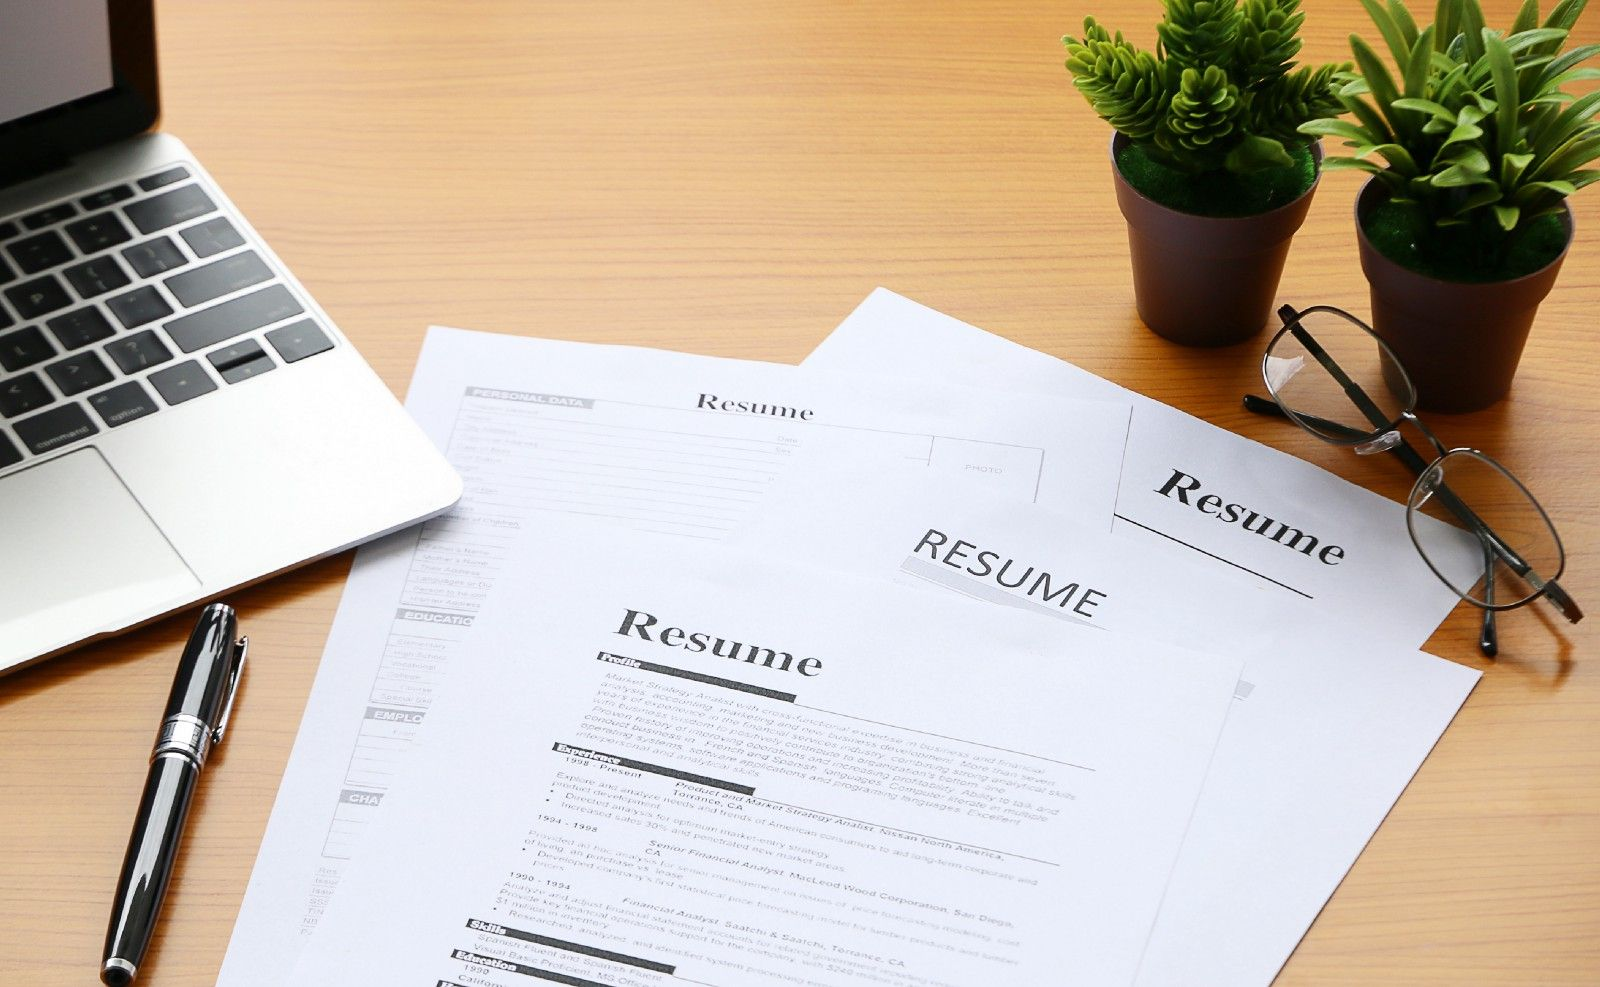 How to write an awesome junior developer résumé in a few